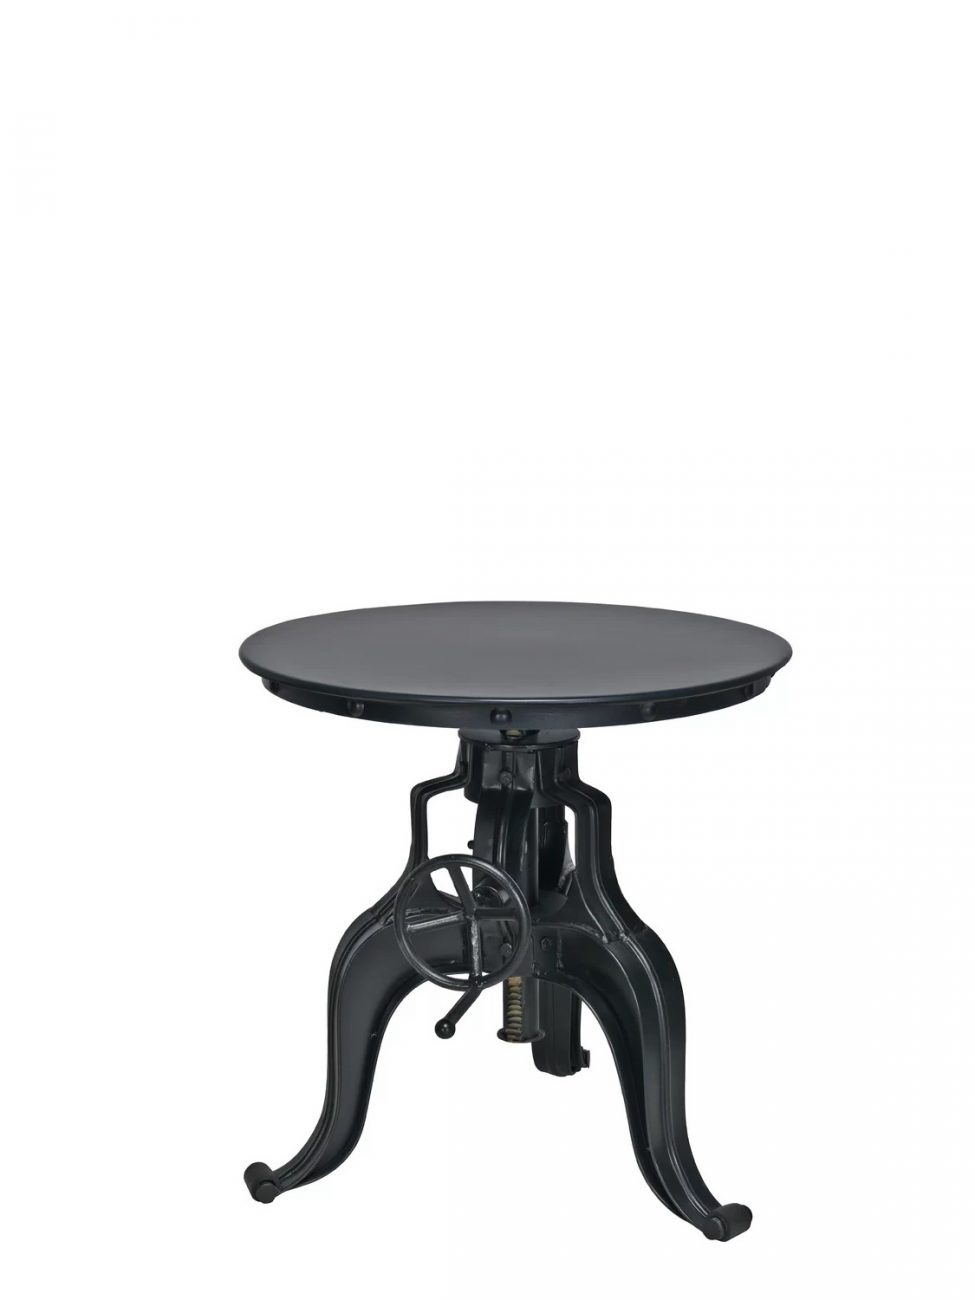 Crank Table 1 (Black)